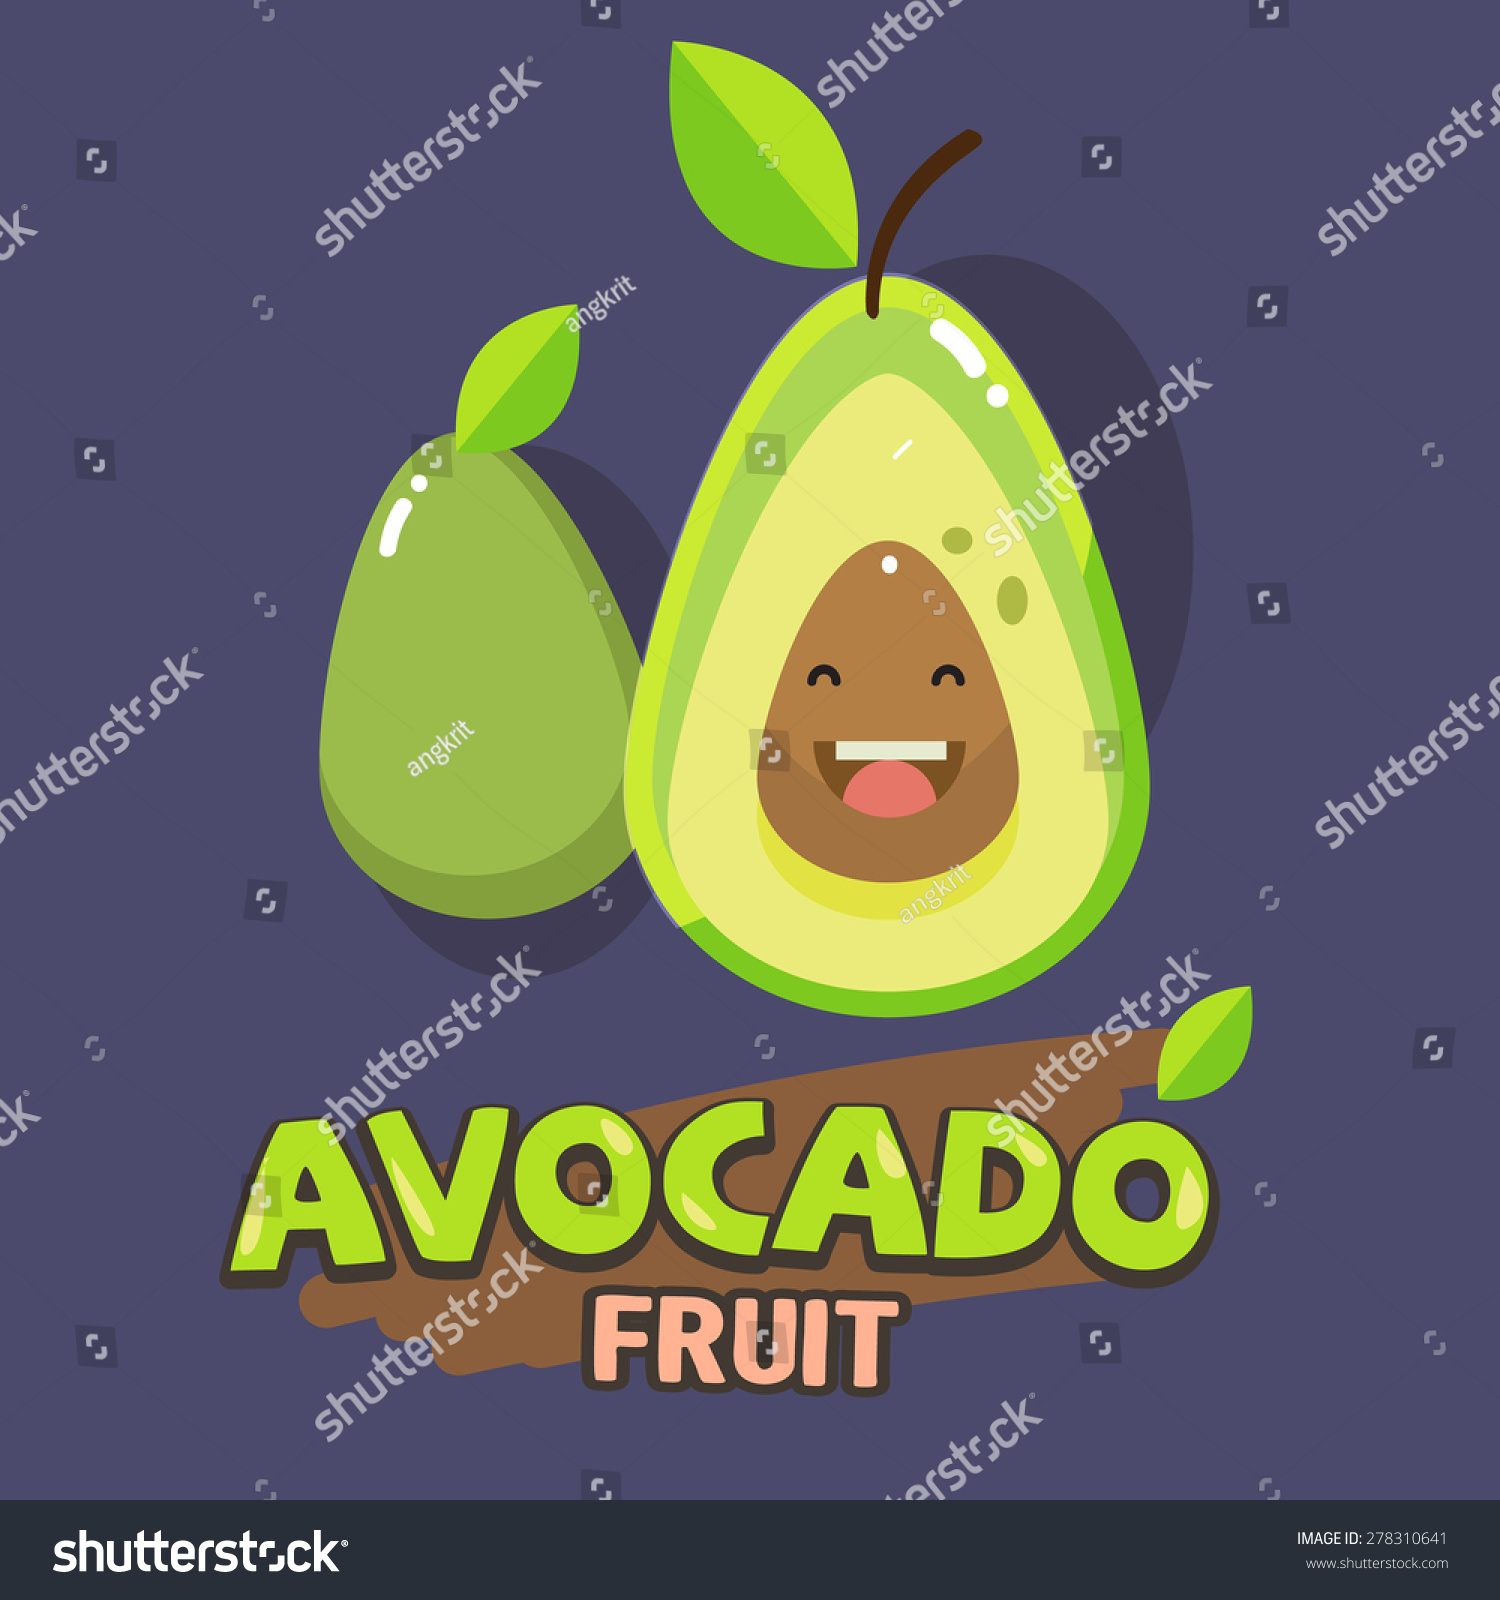 avocado a fruit avocado fruit or vegetable